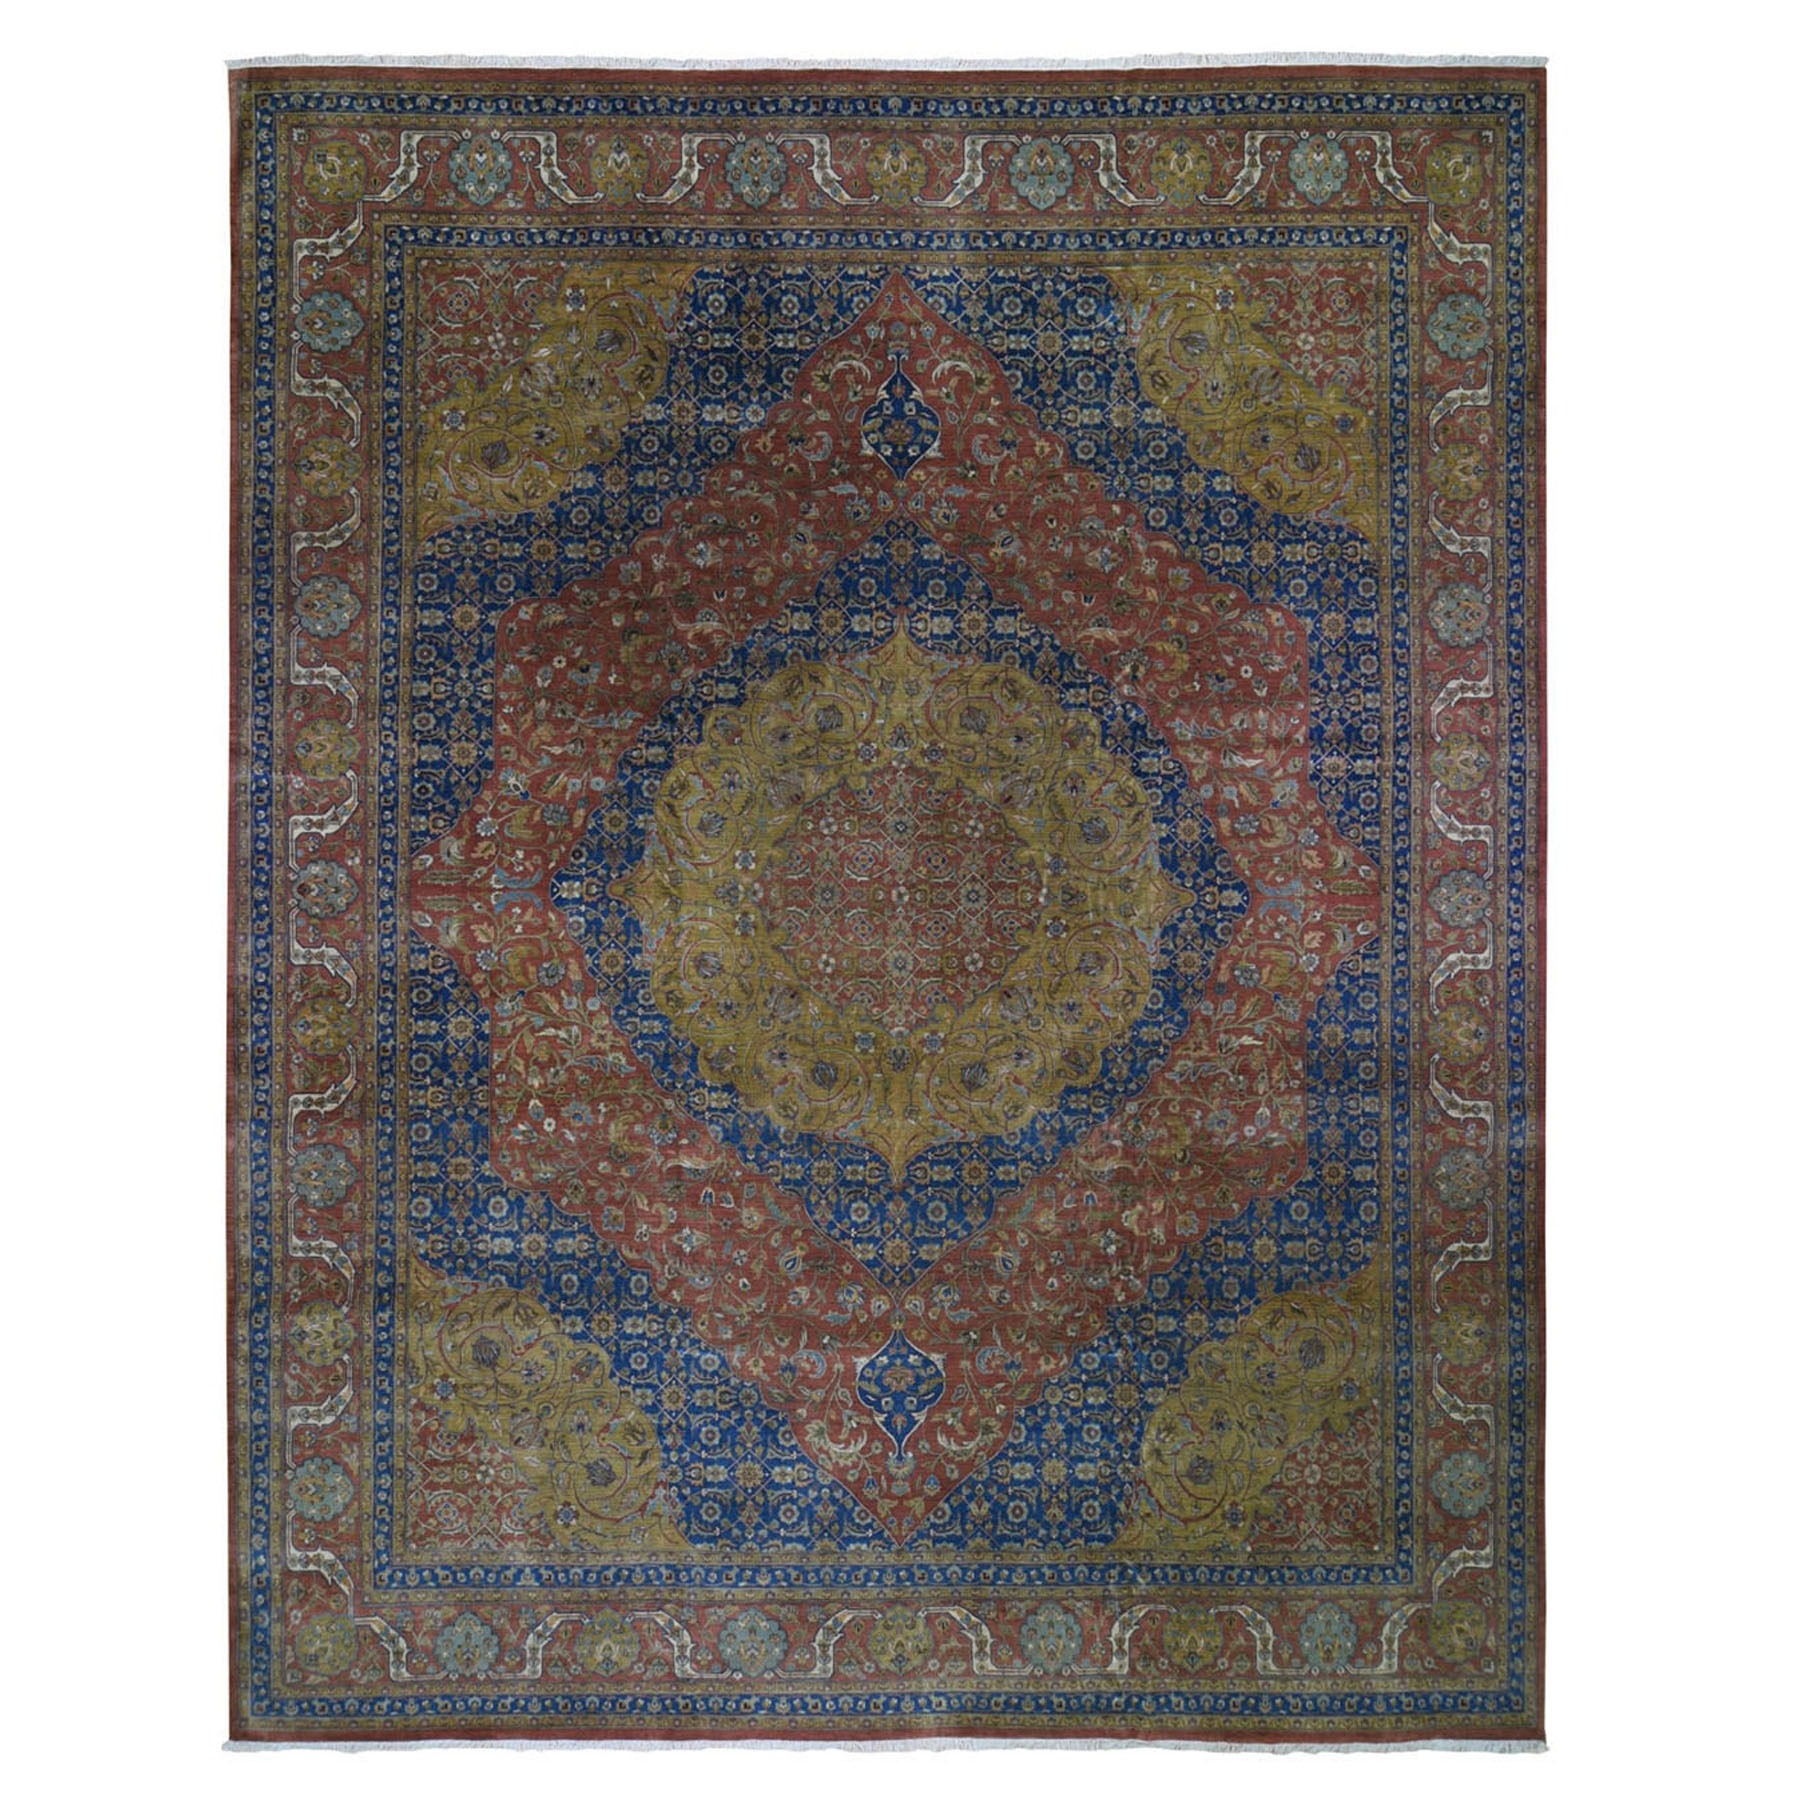 12'X15' Oversized Tabriz 300 Kpsi New Zealand Wool Hand Knotted Oriental Rug moad9767